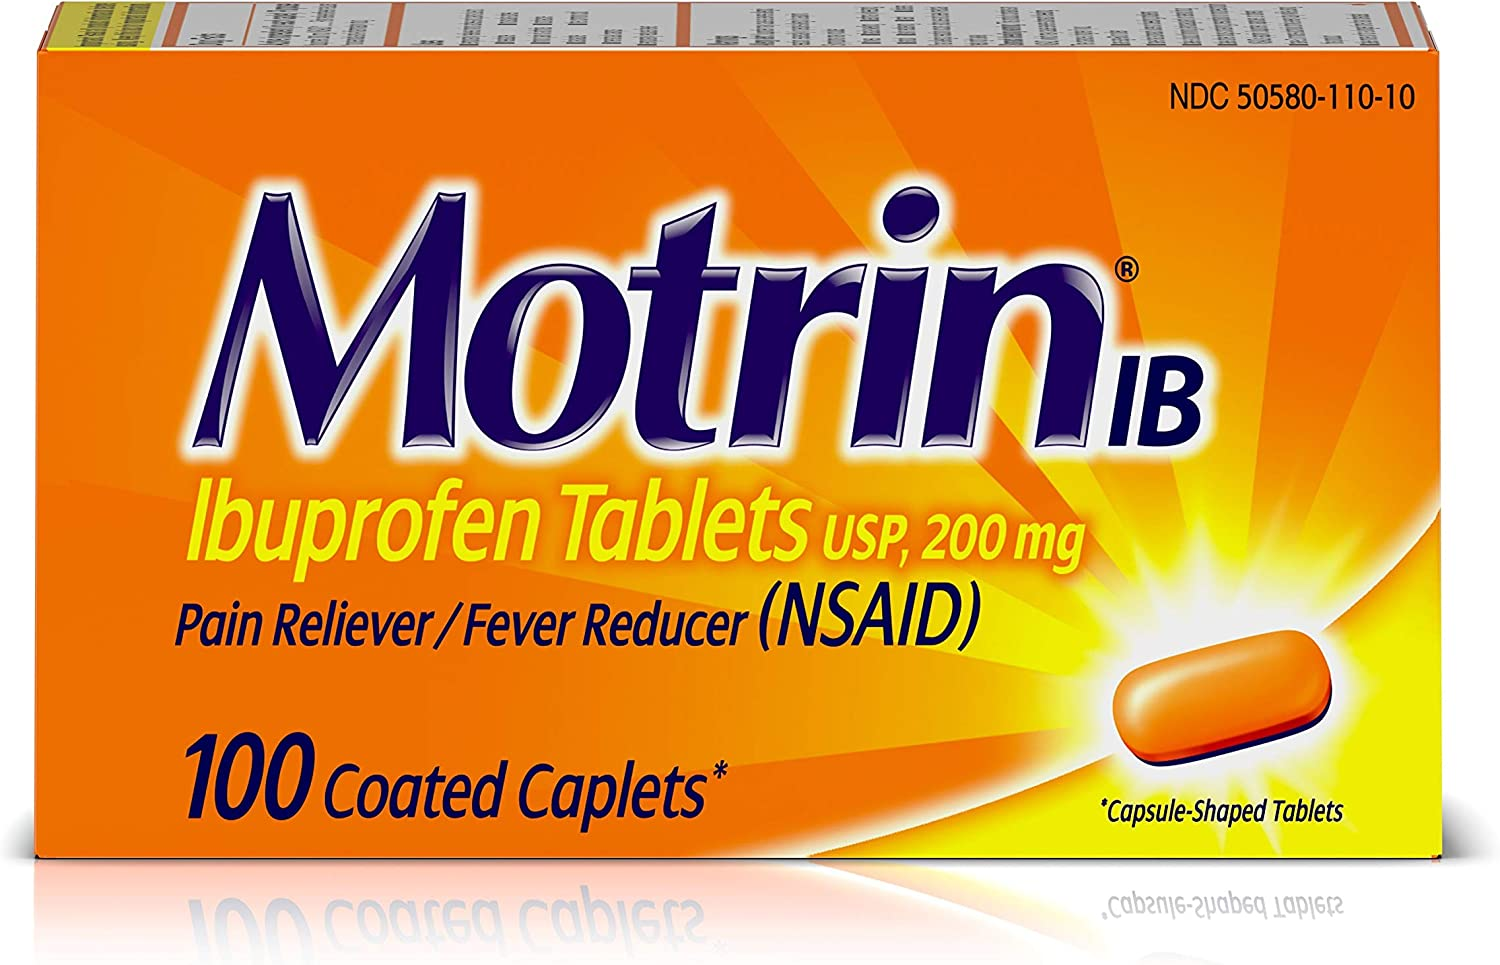 Motrin IB Pain Reliever Fever Popular product NSAID Tablets Cheap super special price Ibuprofen Reducer